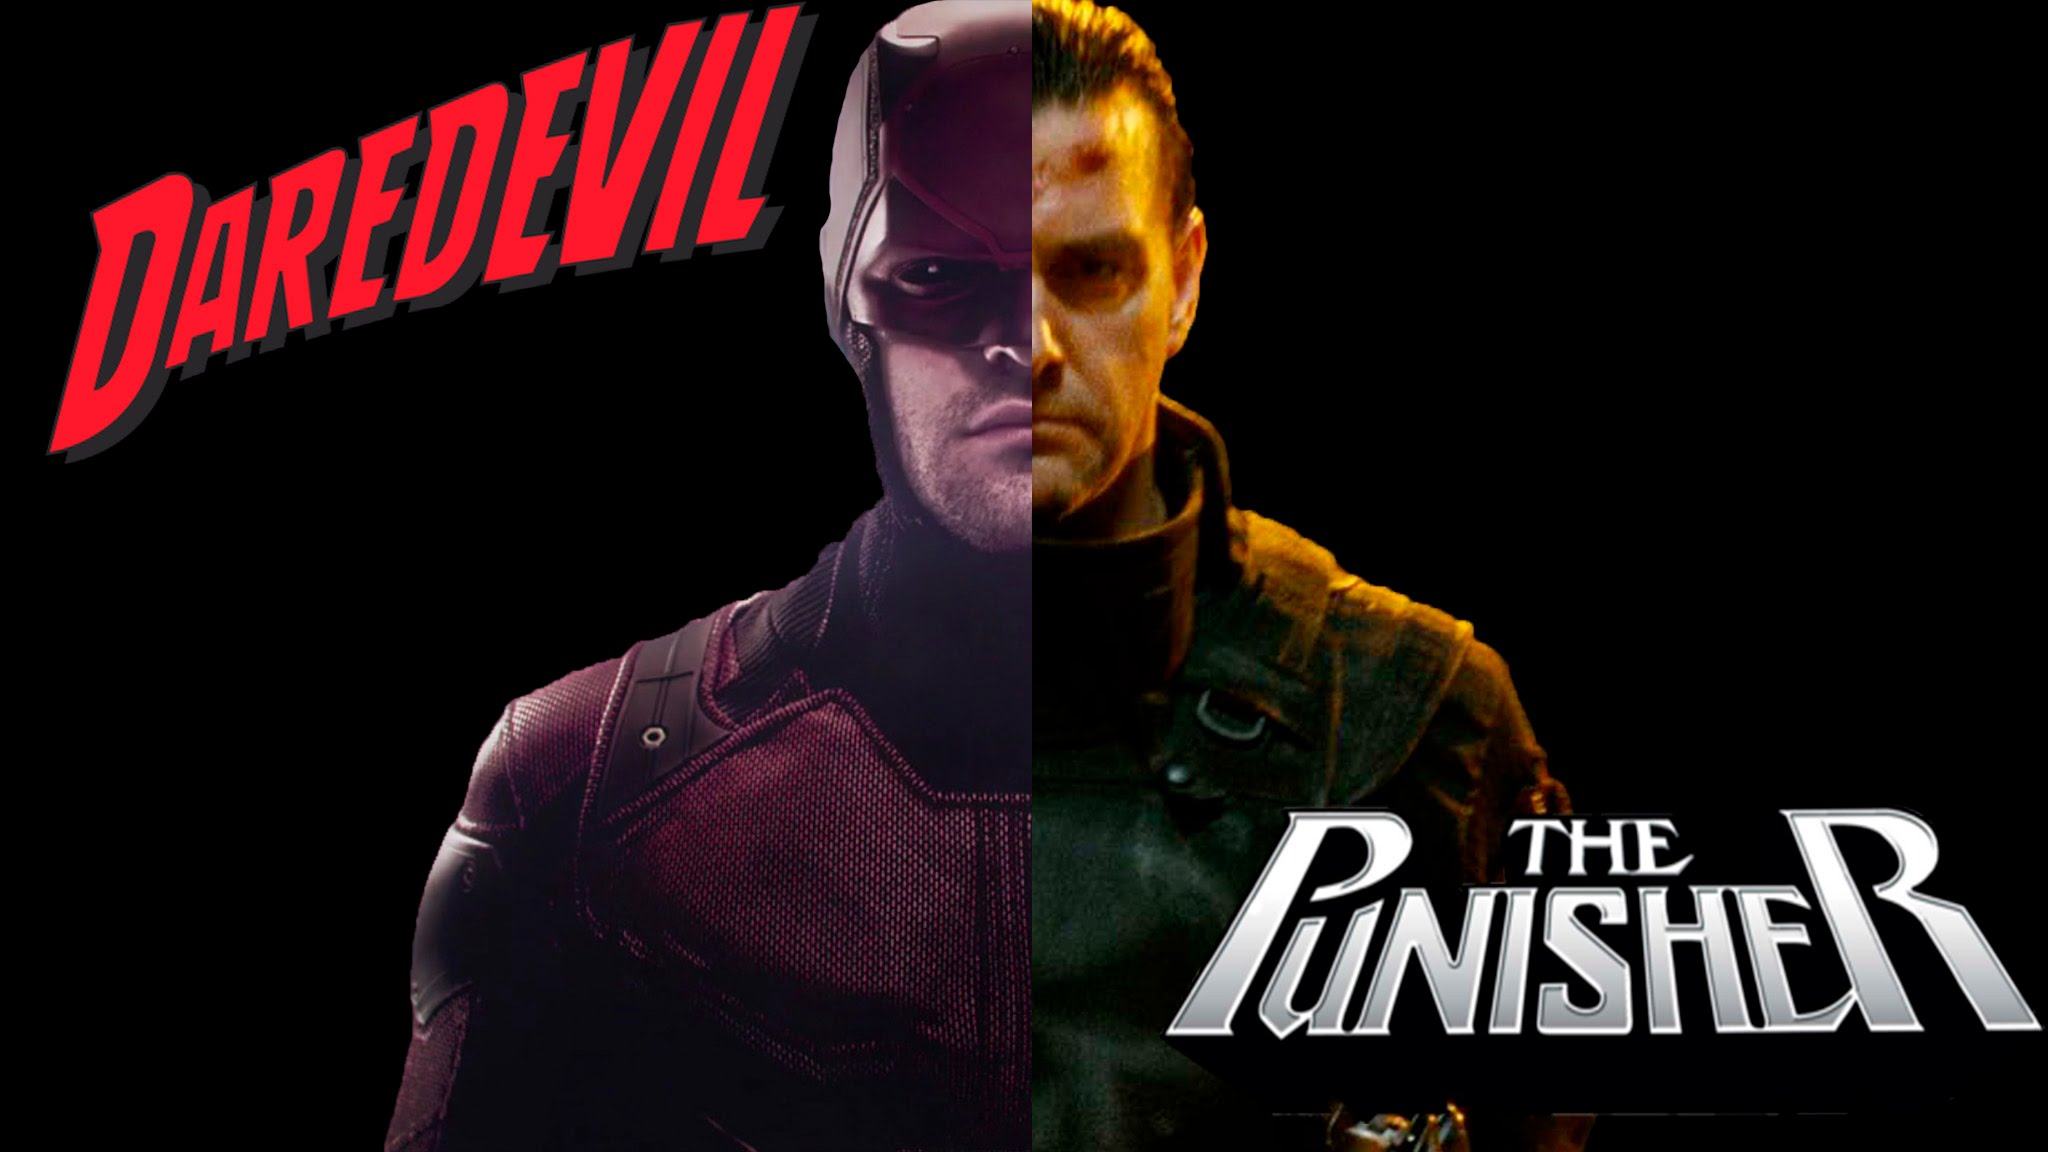 Daredevil Season 2 Release Date Is March 18 The Punisher Spinoff On Netflix Rumored To Follow SPOILERS